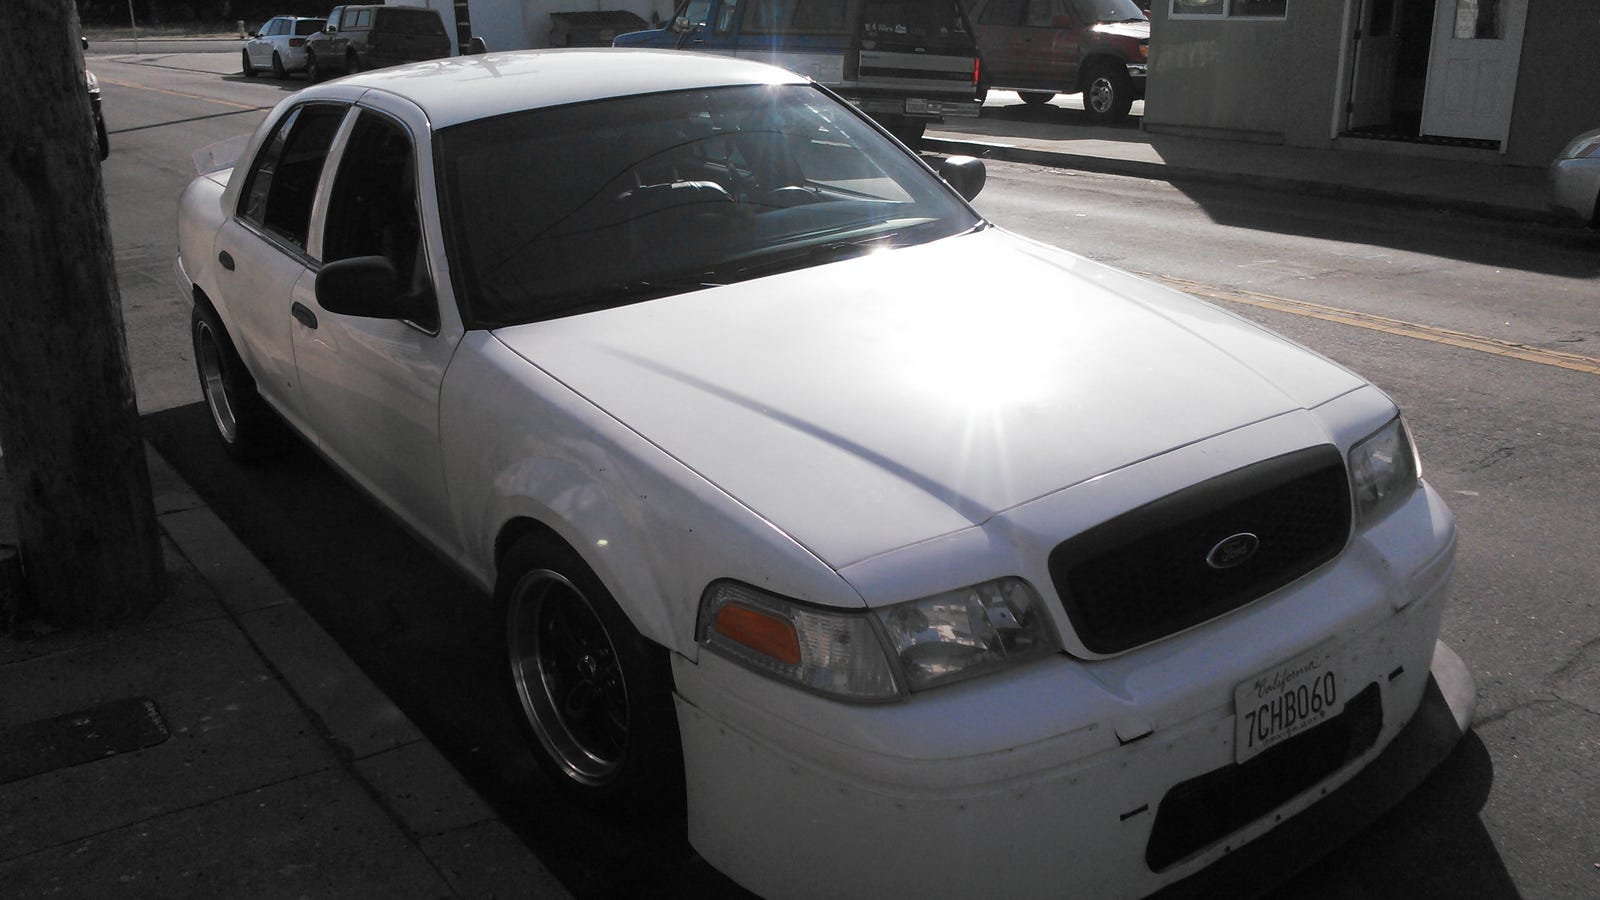 Hook up crown vic — pic 1